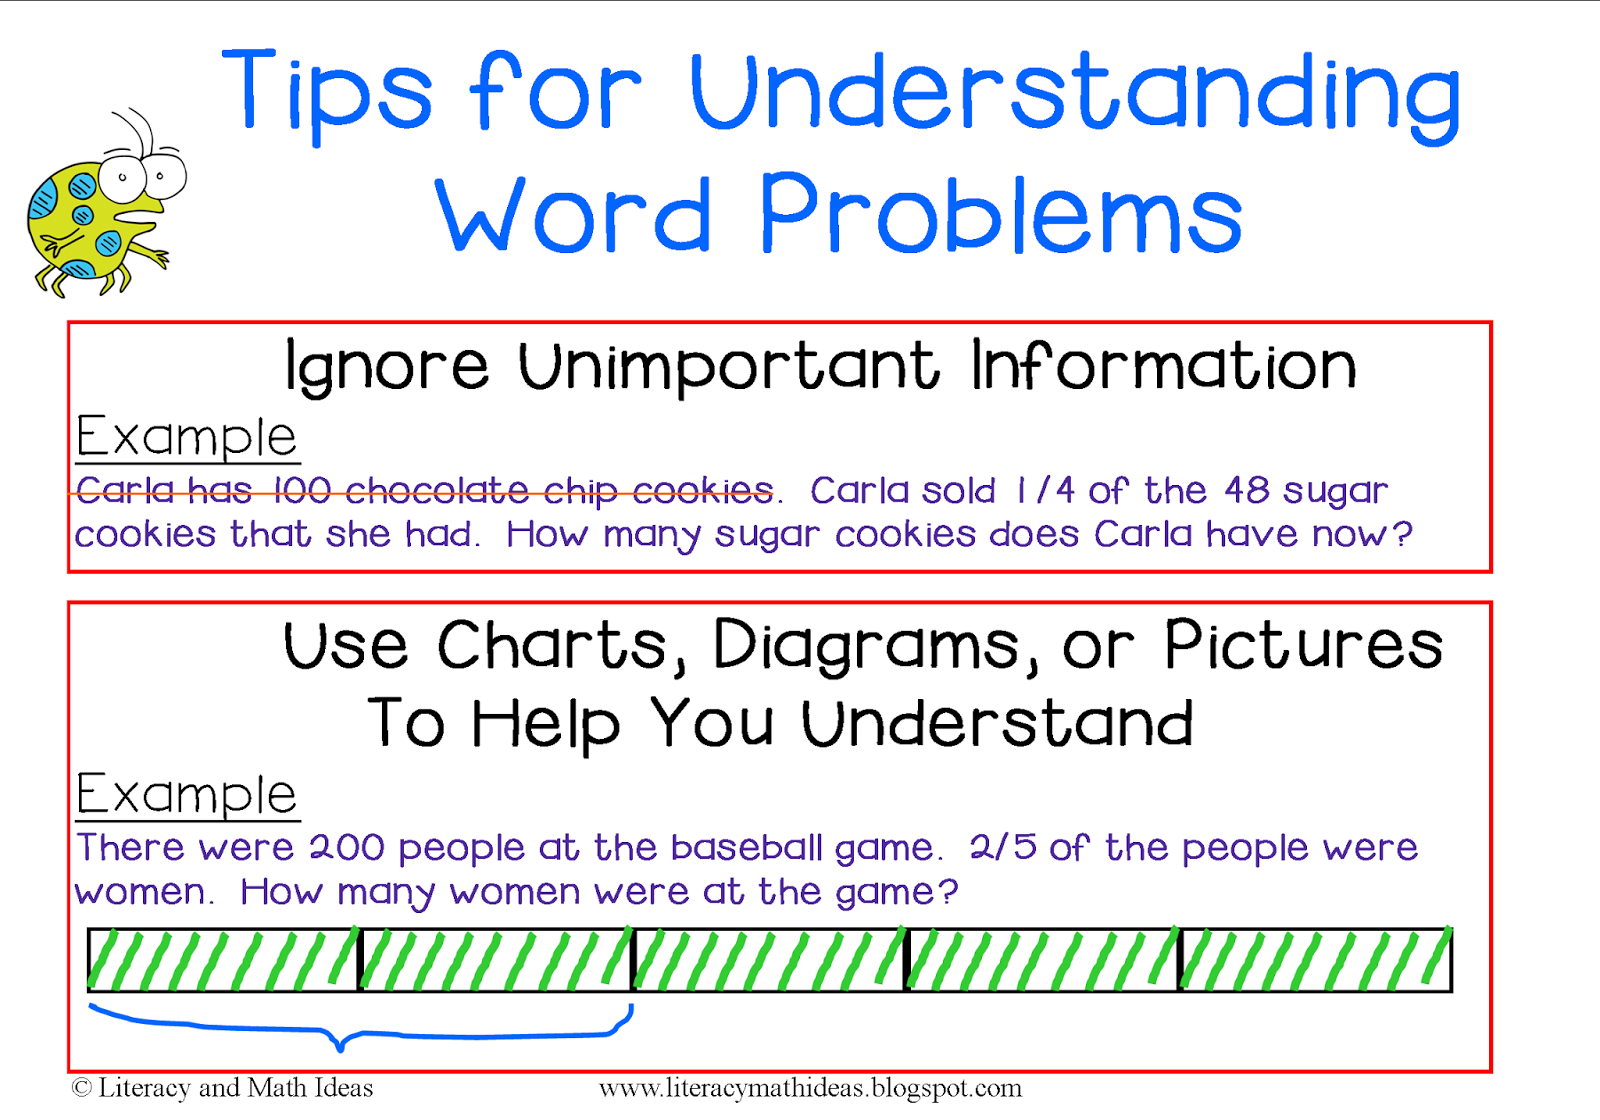 Integrating Reading With Math The Blog Post Has Helpful Tips To Help Students Understand Word